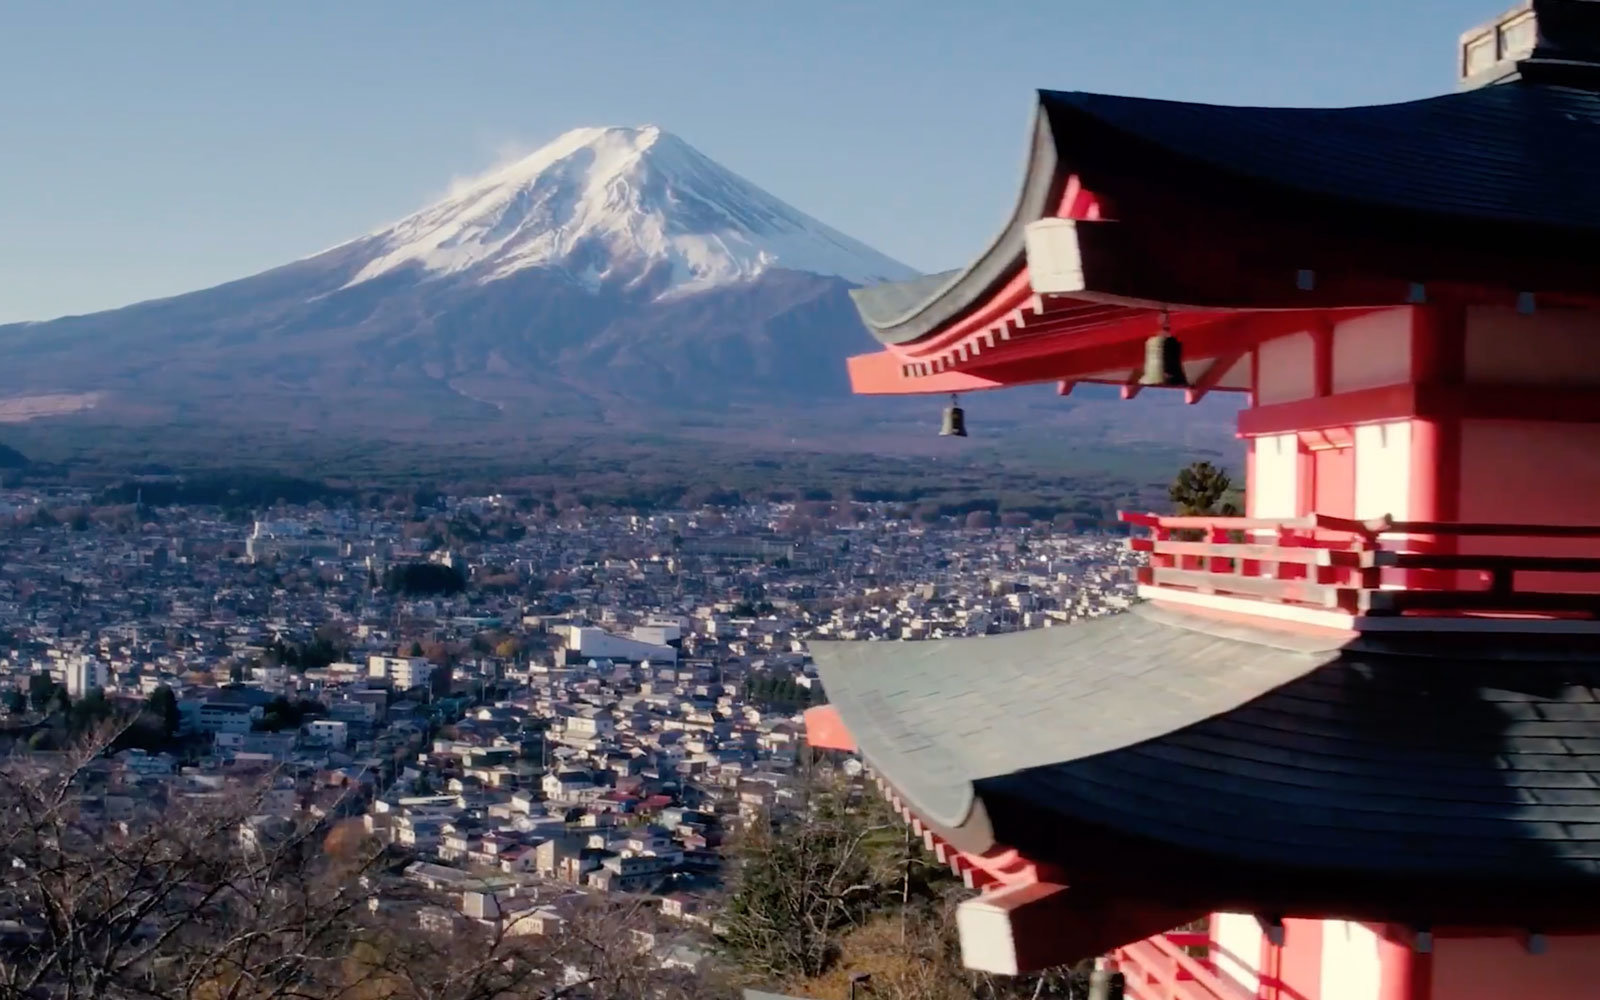 Why Japan Is Travel + Leisure's 2018 Destination of the Year (Video)